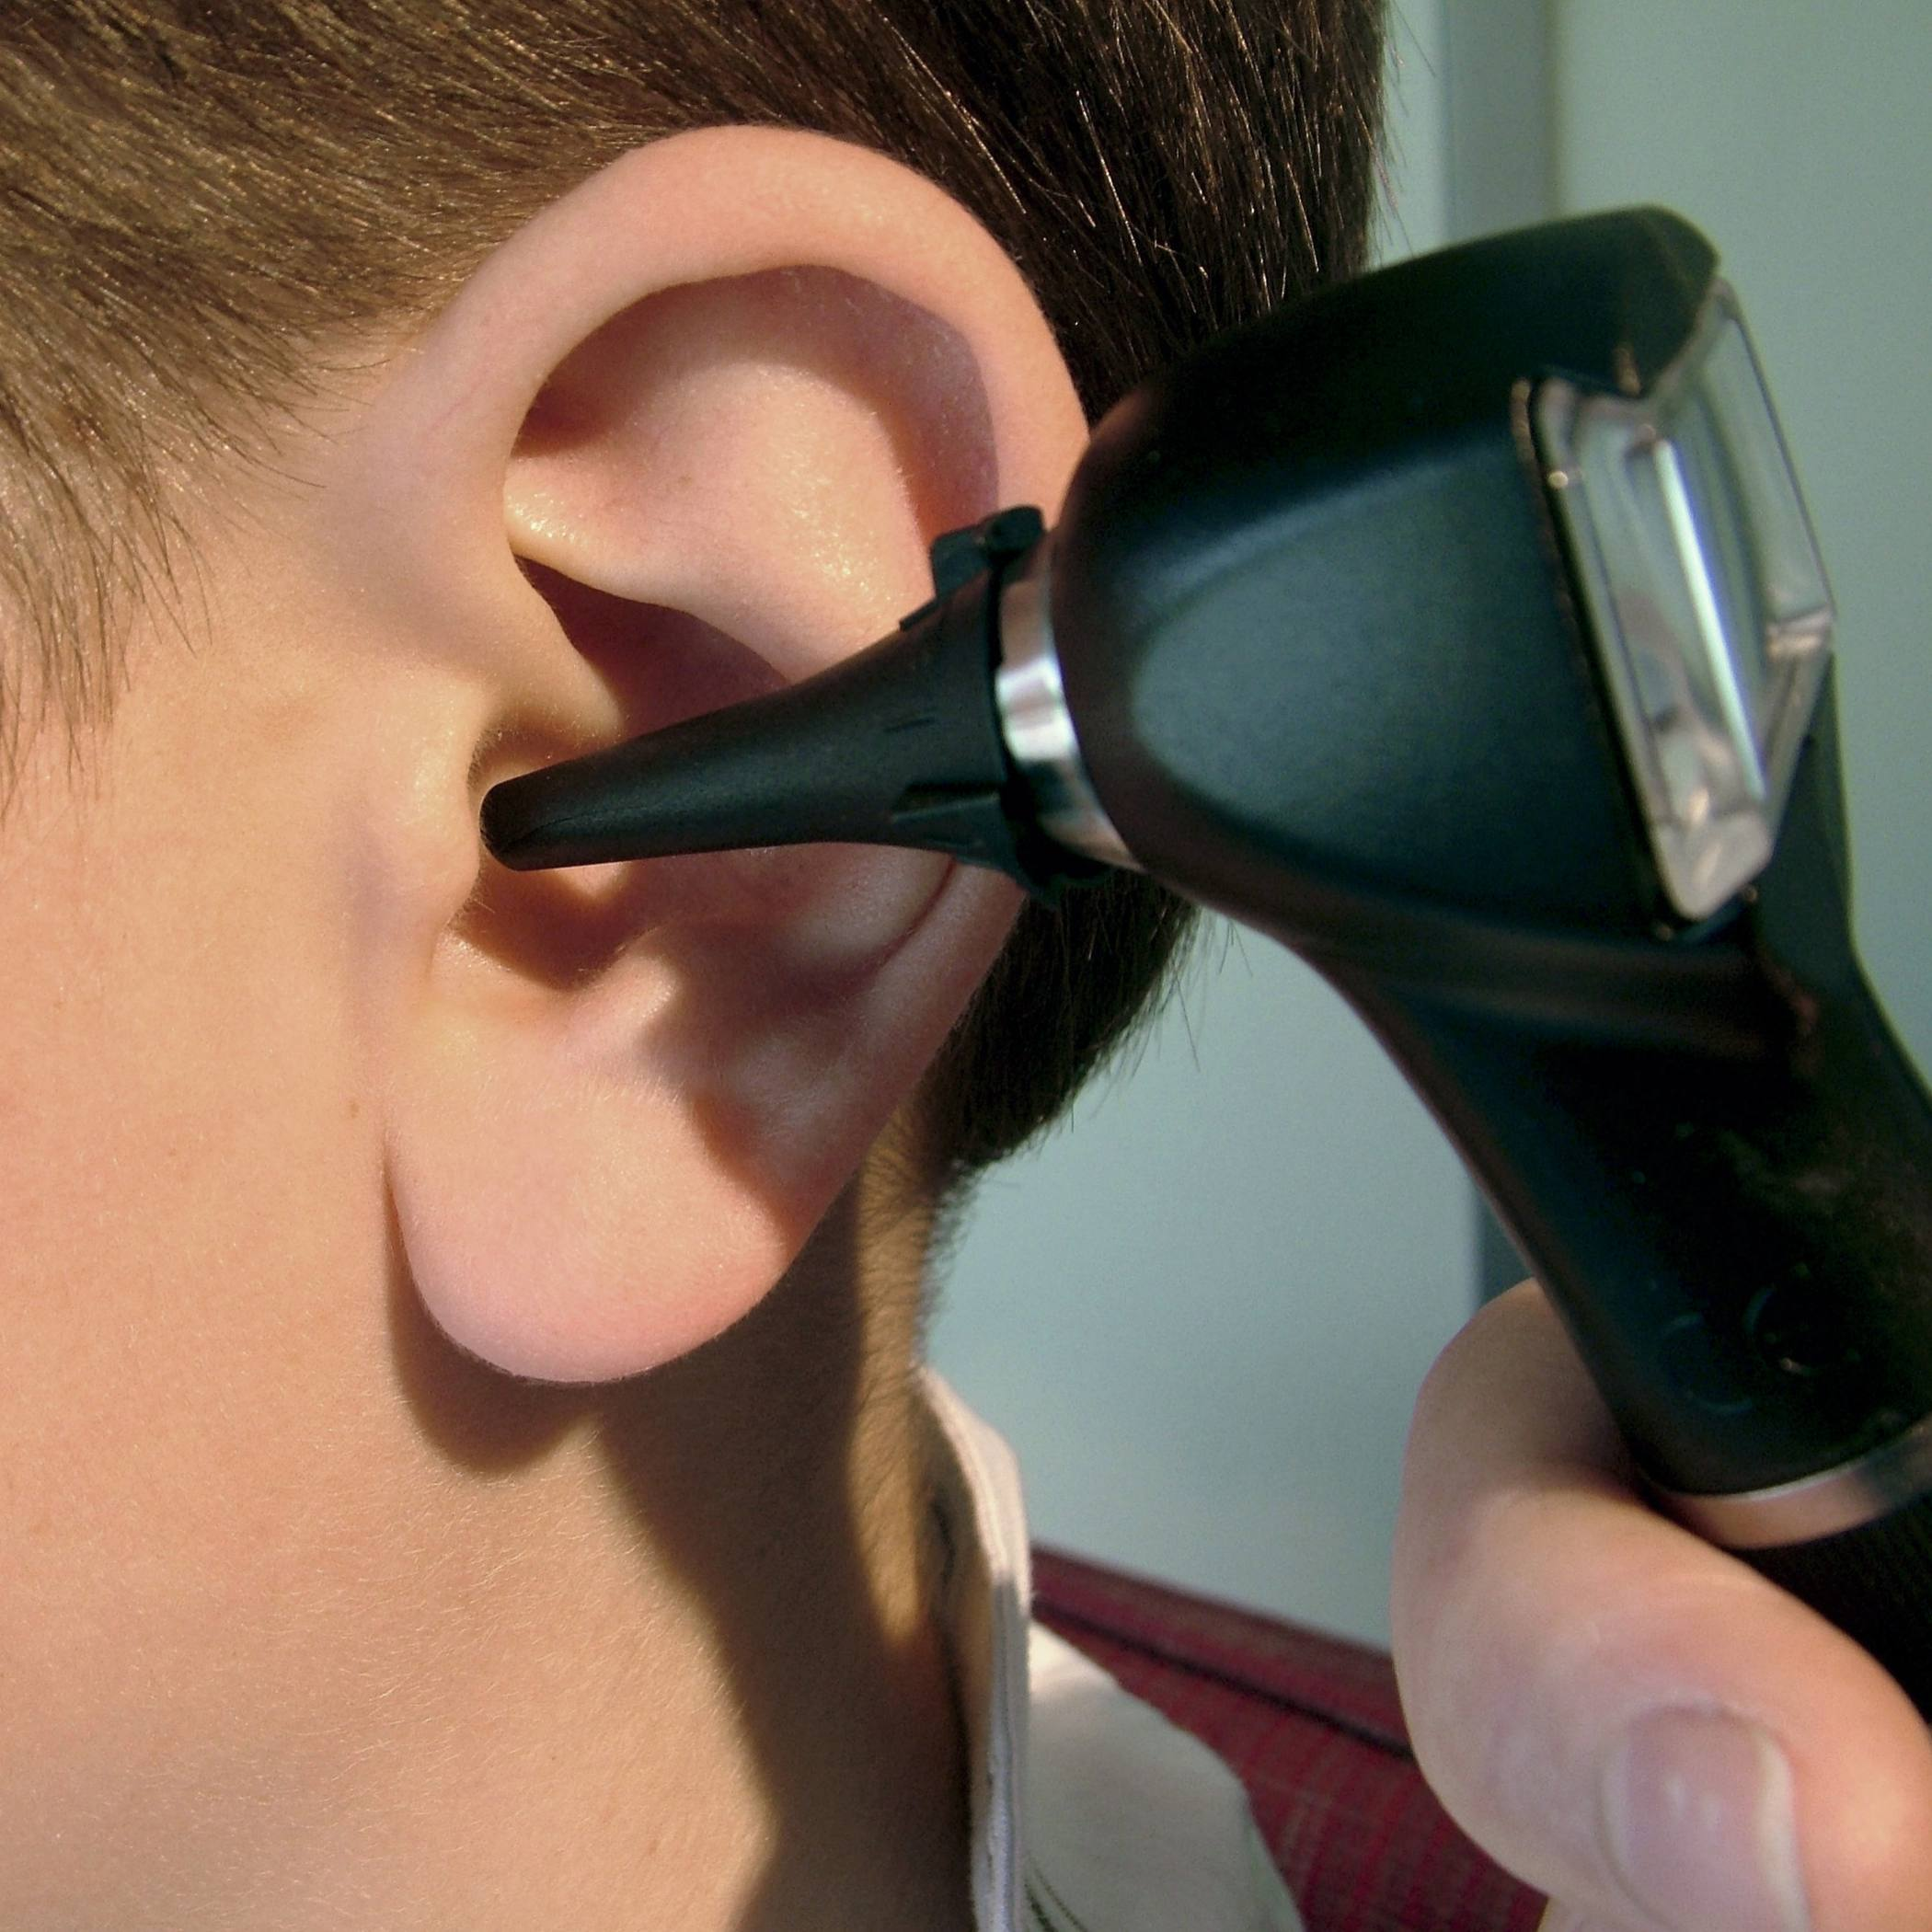 a closeup of a young boy's ear with a person looking in the ear with an otoscope